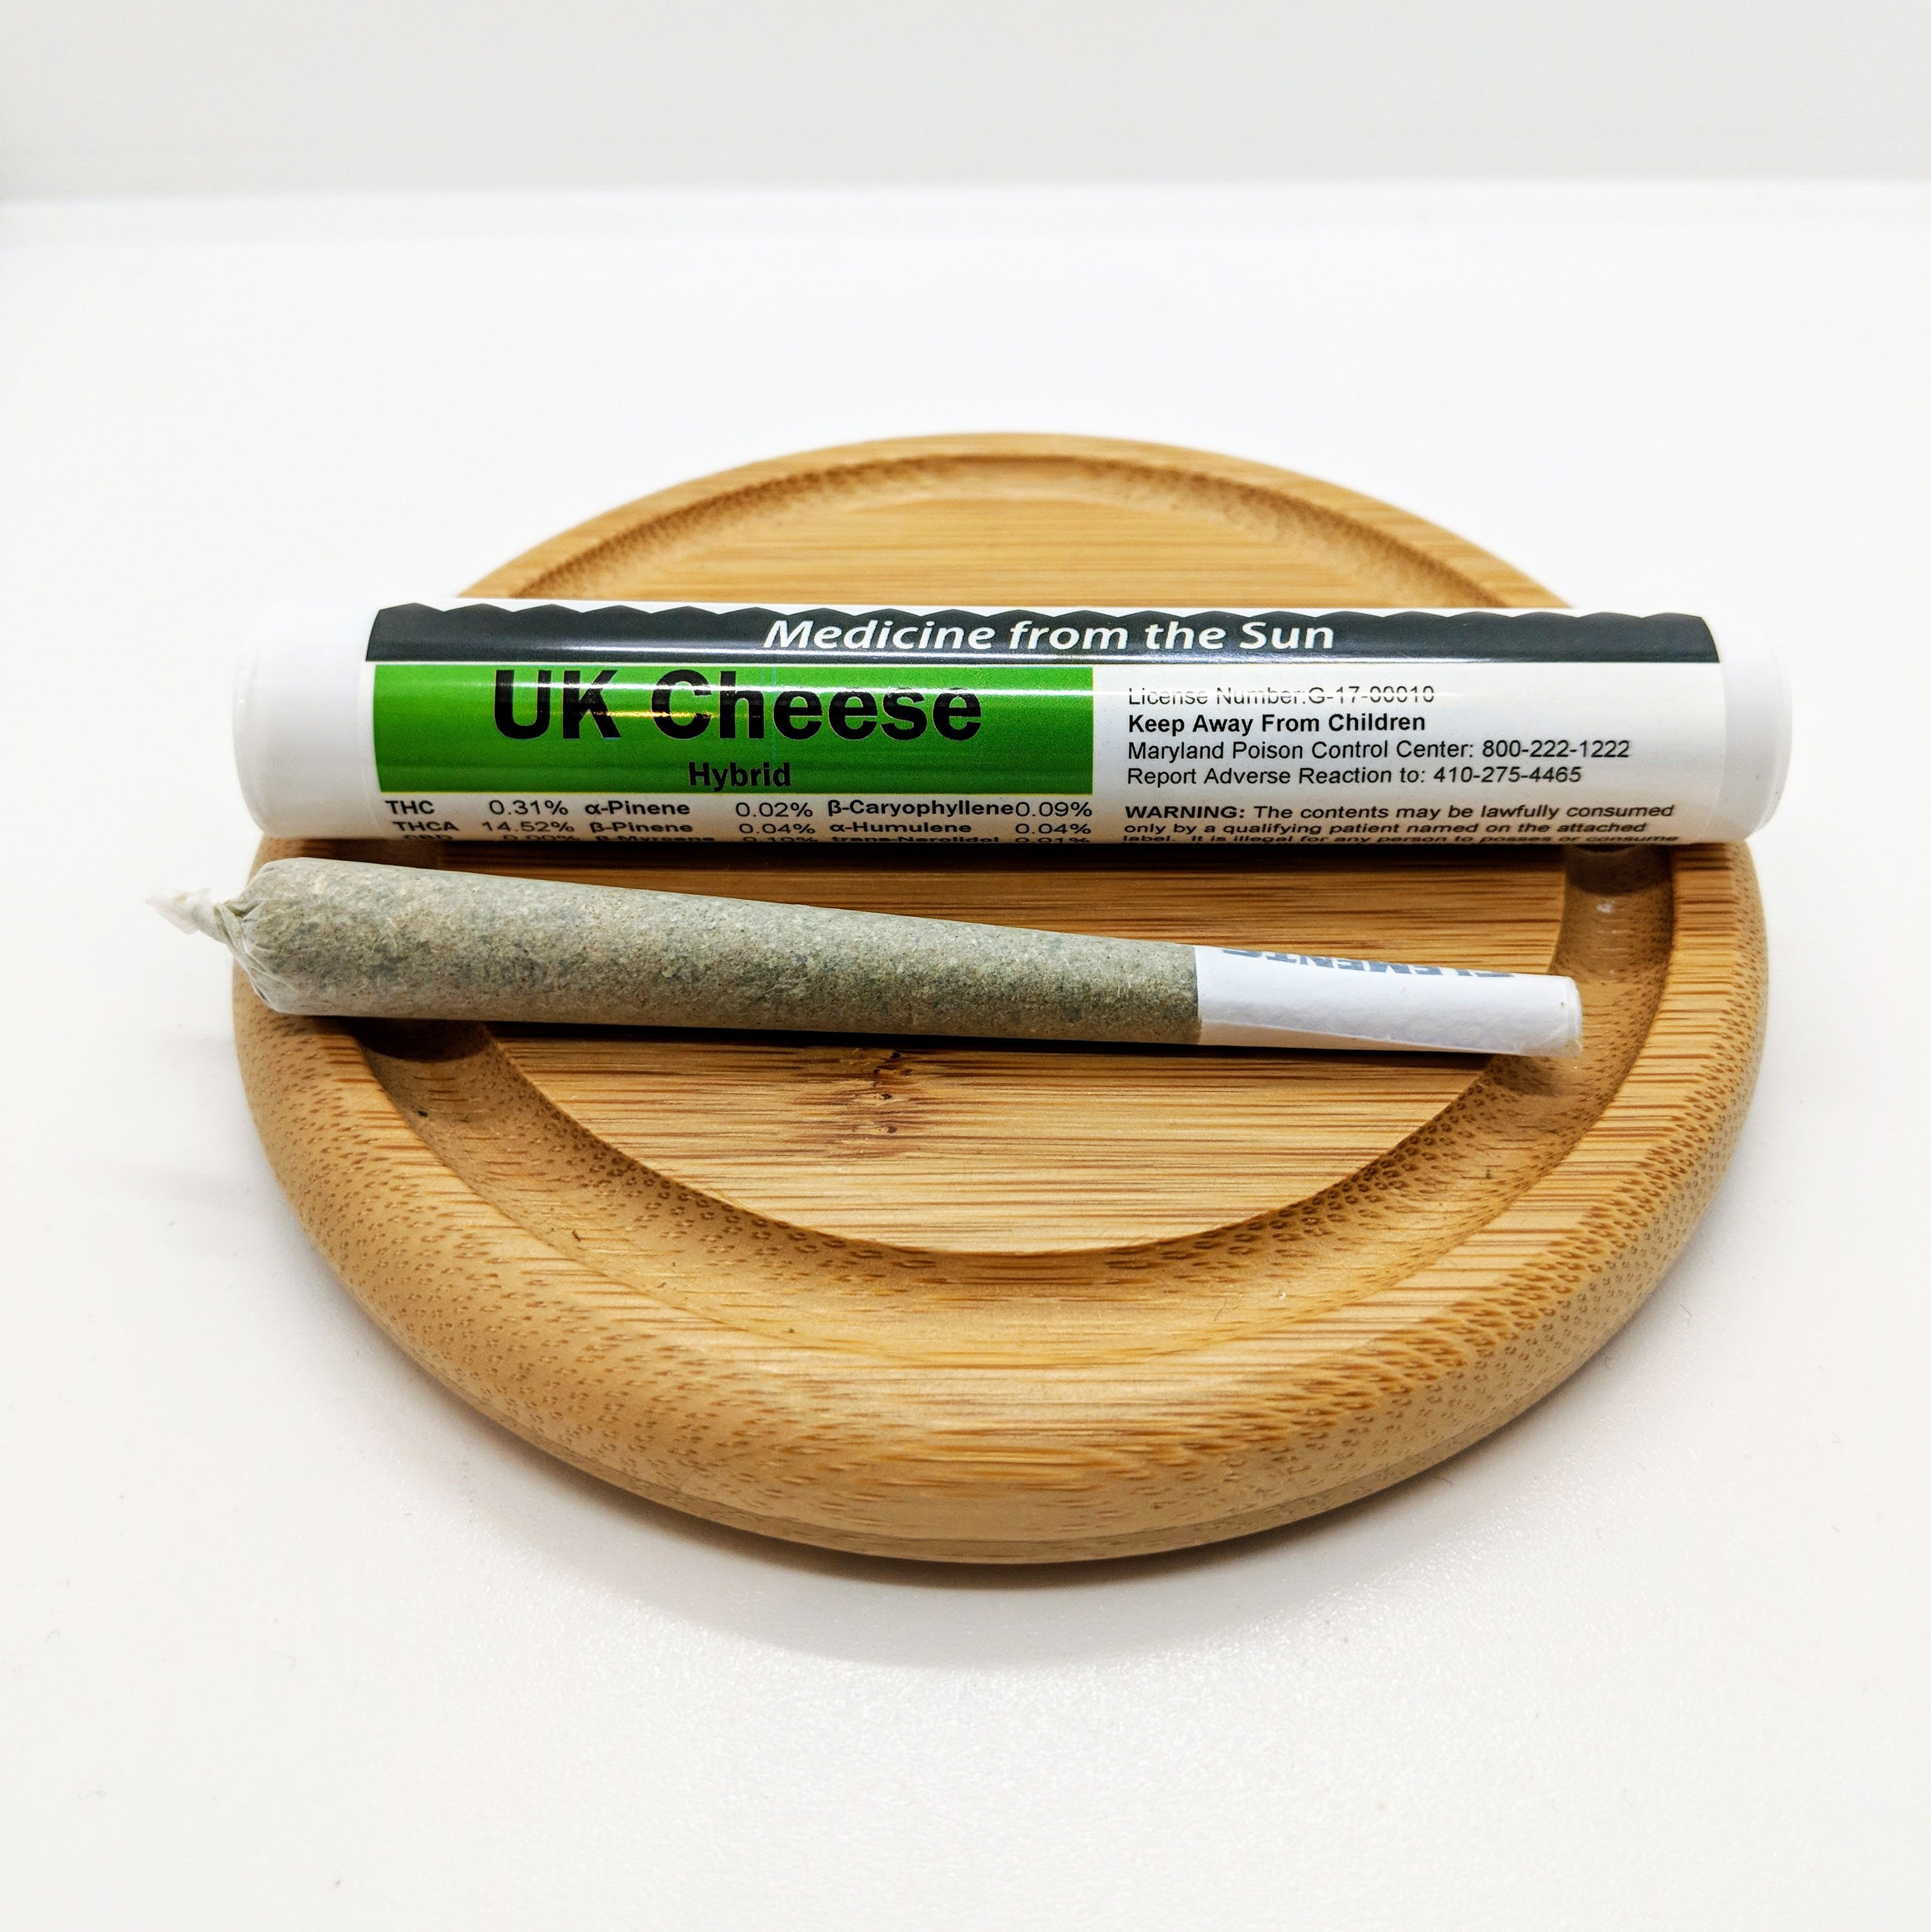 preroll-uk-cheese-by-sunmed